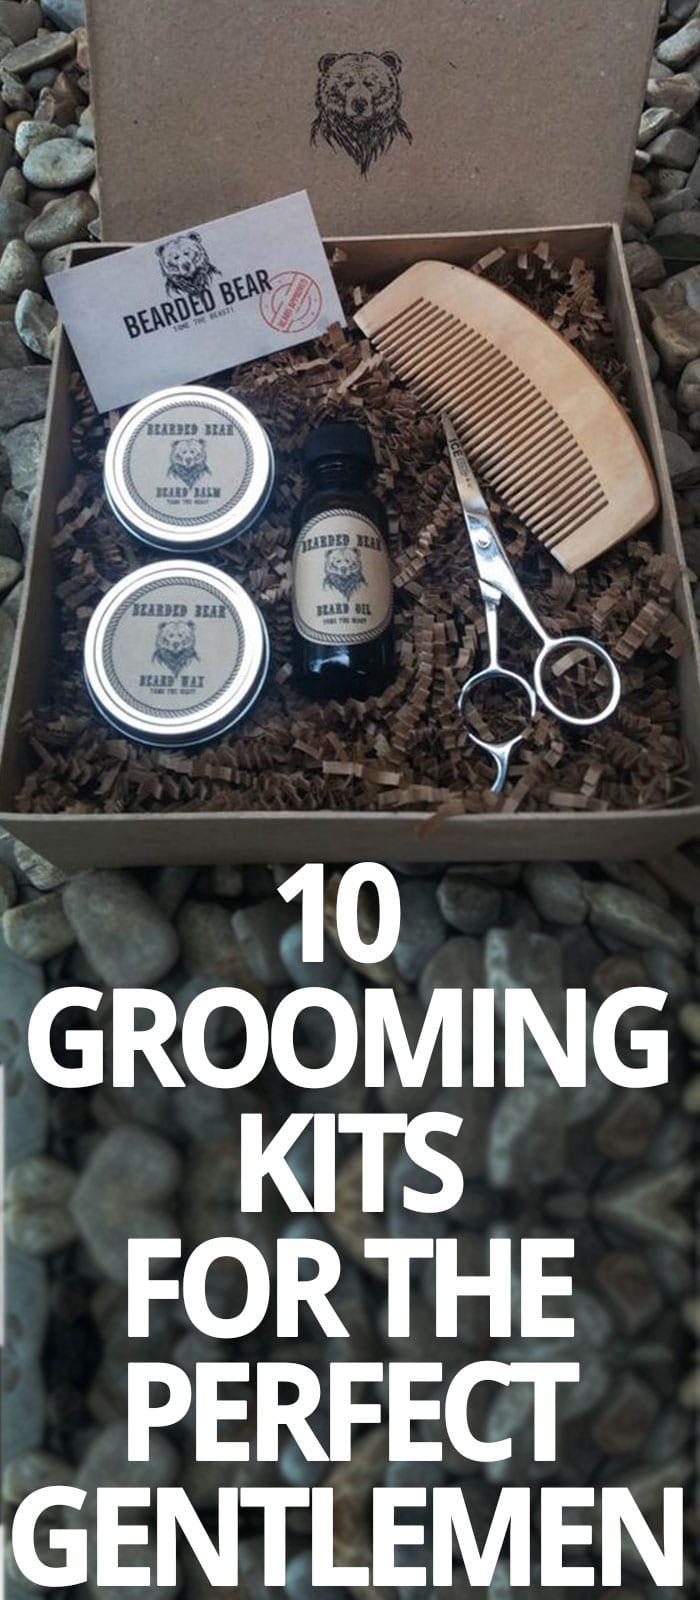 GROOMING-KITS-FOR-THE-PERFECT-GENTLEMAN